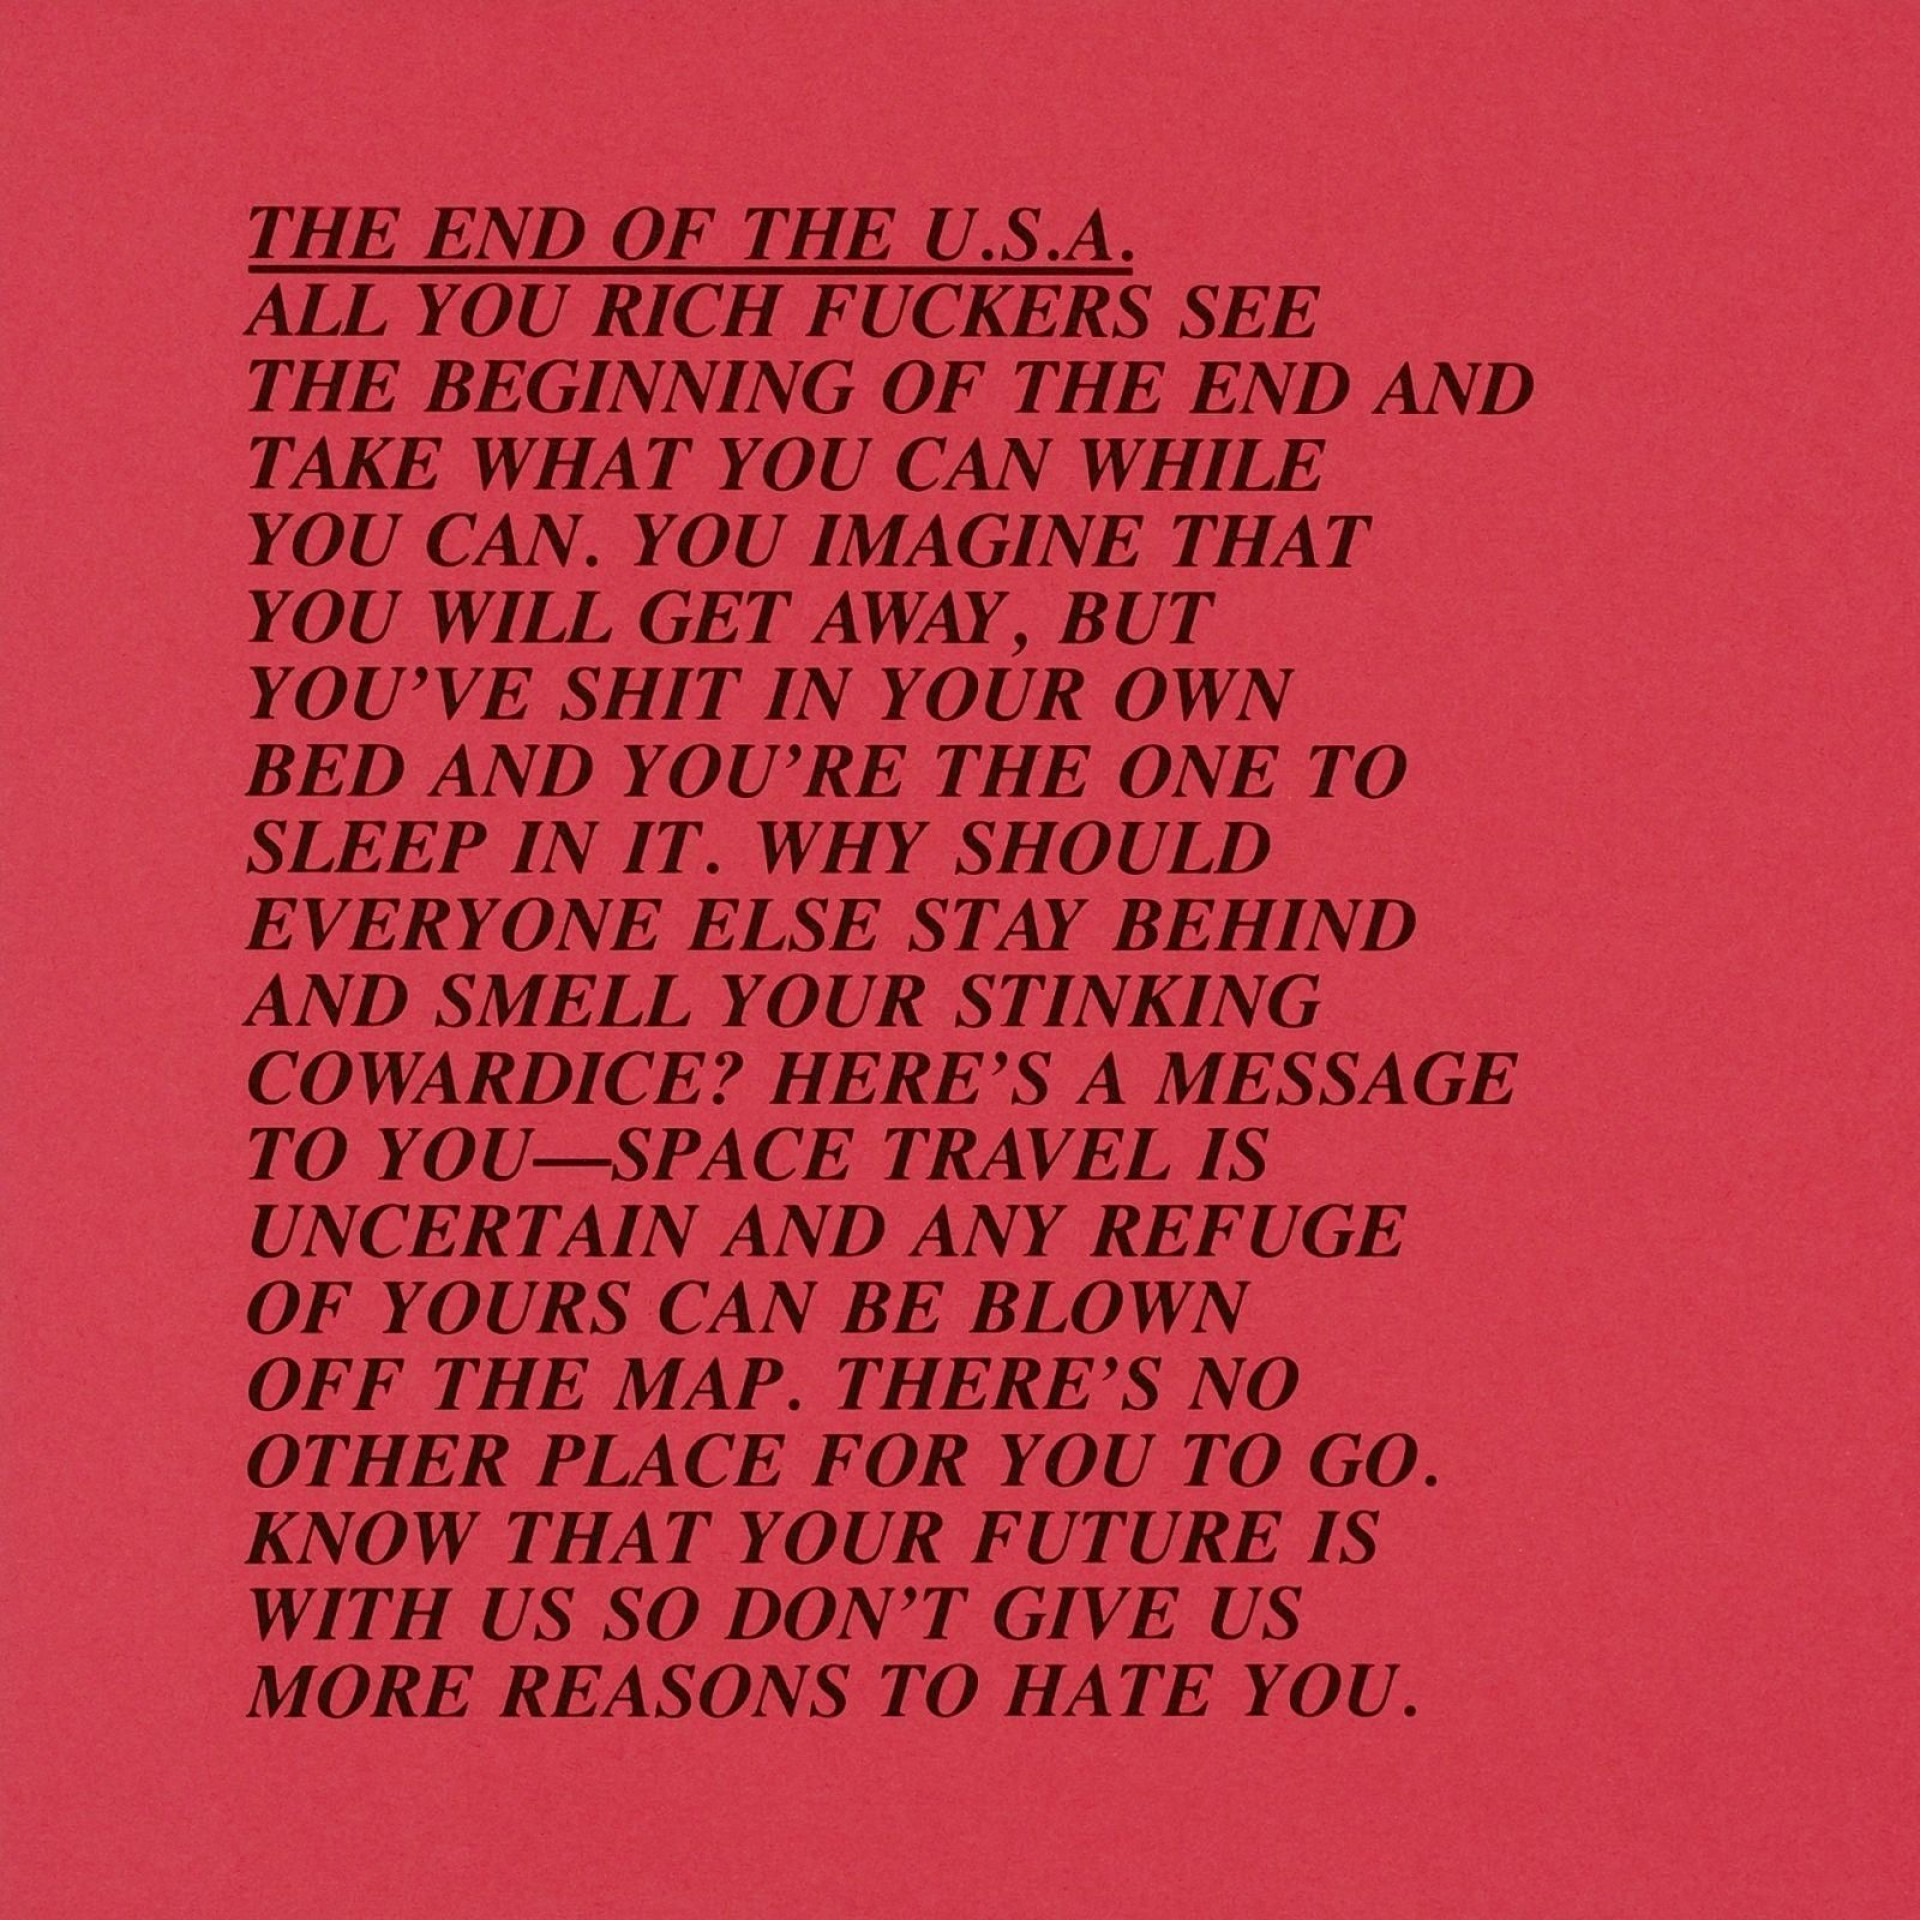 010 Jenny Holzer Inflammatory Essays Essay Awful For Sale Print Buy 1920